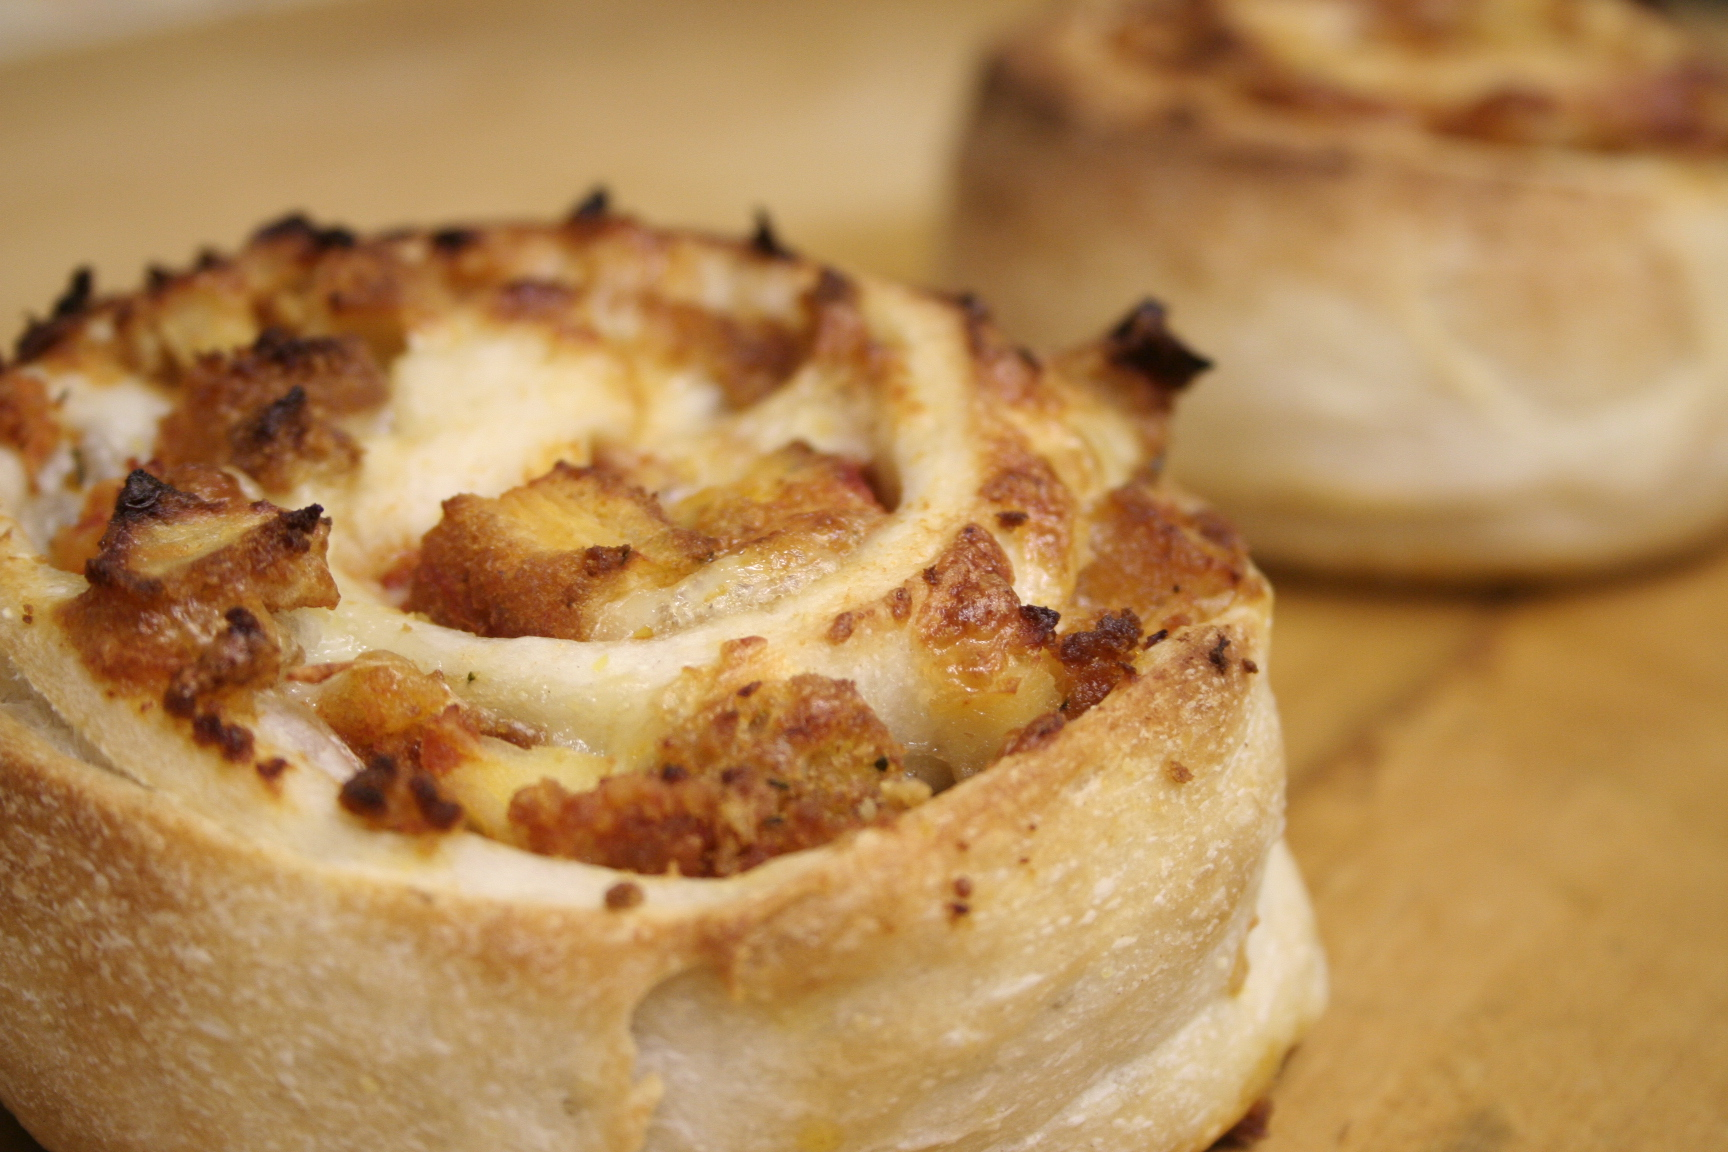 Pinwheel stuffed with chicken cutlet and cheese